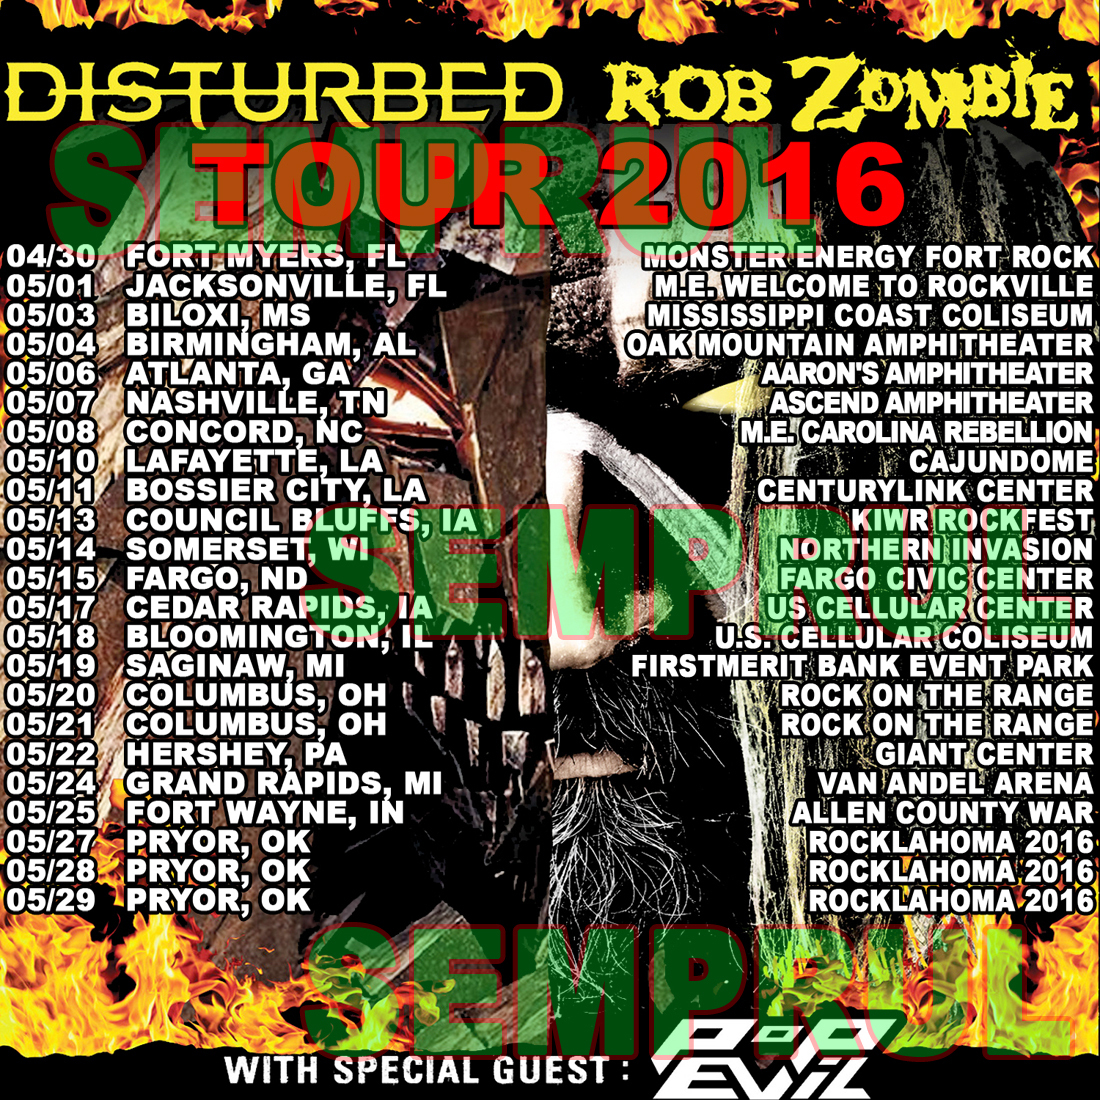 ROB ZOMBIE & KORN Announce Night Of The Living Dreads Tour 2013 ...